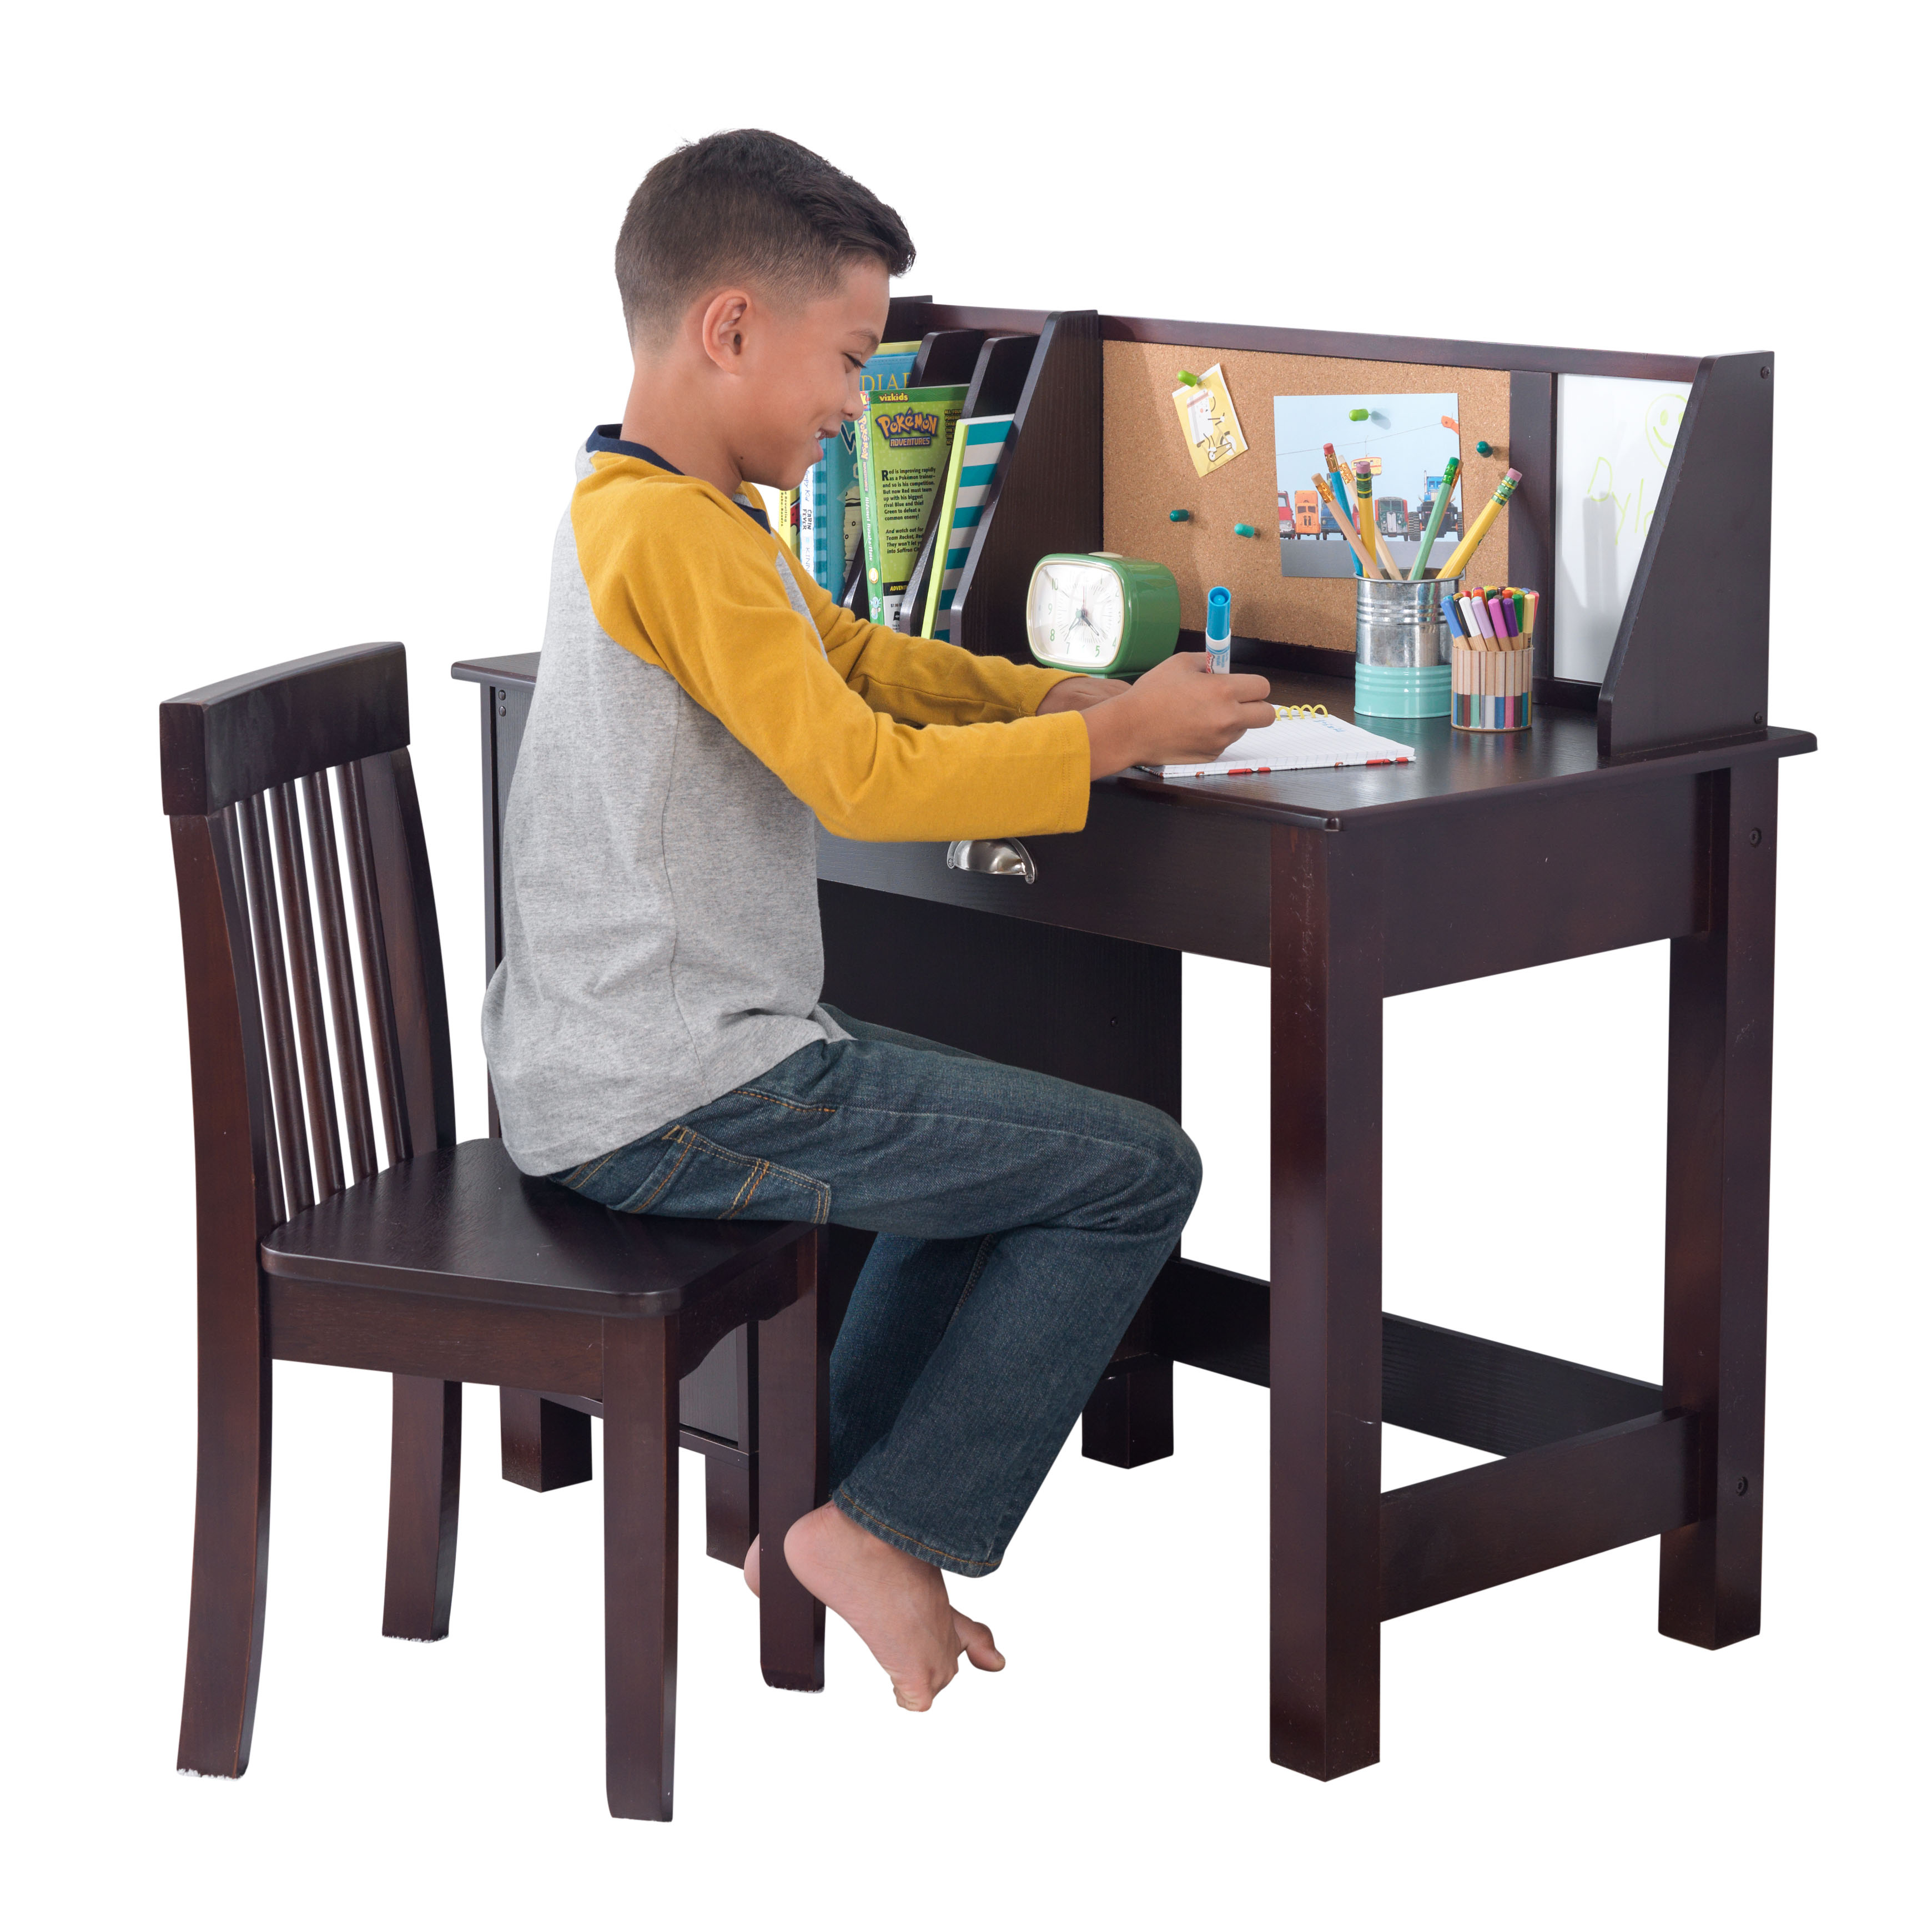 KidKraft Study Desk with Chair - Espresso